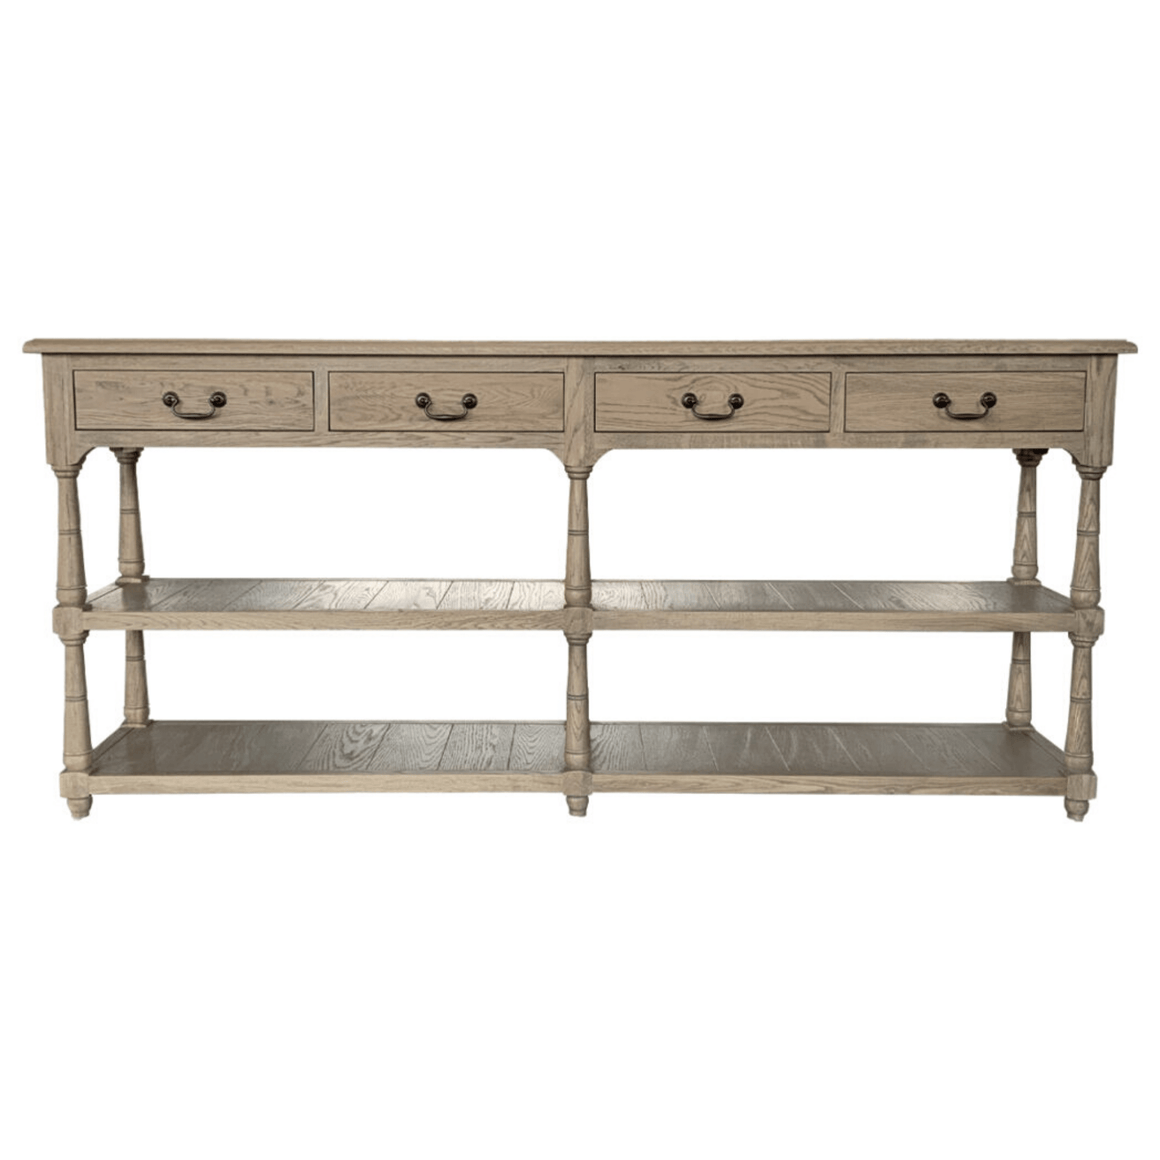 STUNNING SOLID WEATHERED OAK CONSOLE / 4 DRAWERS - Bowerbird on Argyle